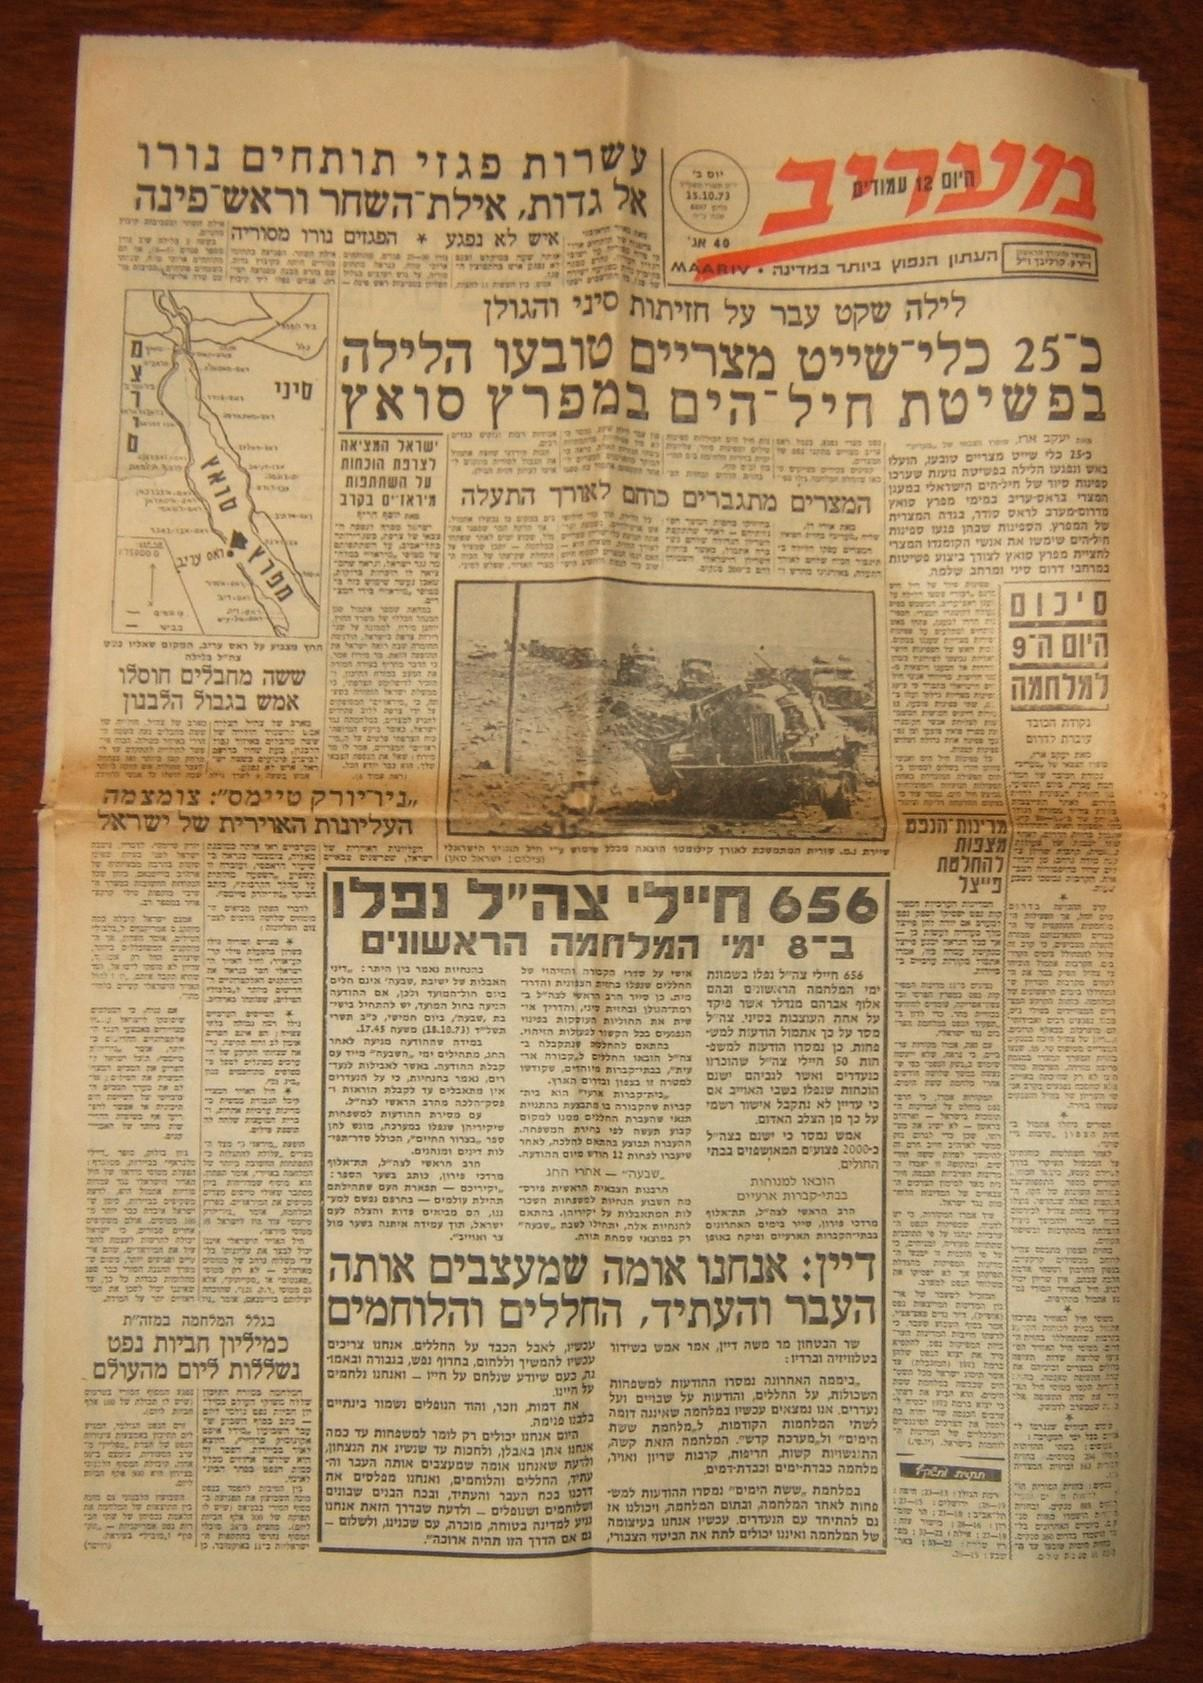 Yom Kippur War 'Maariv' newspaper, 15 Oct. 1973